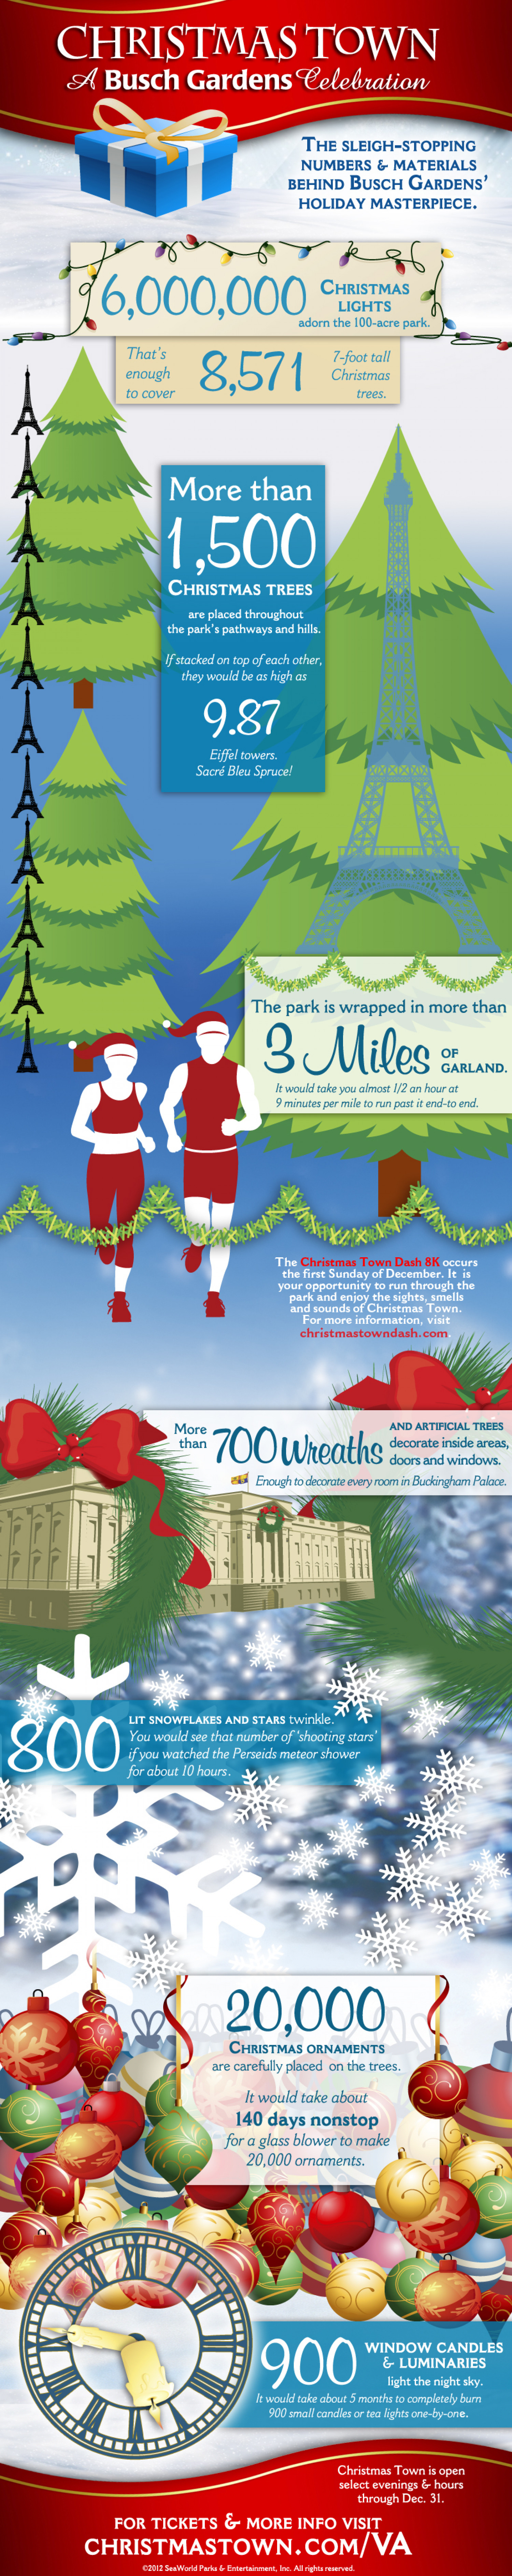 Busch Gardens Christmas Town Infographic